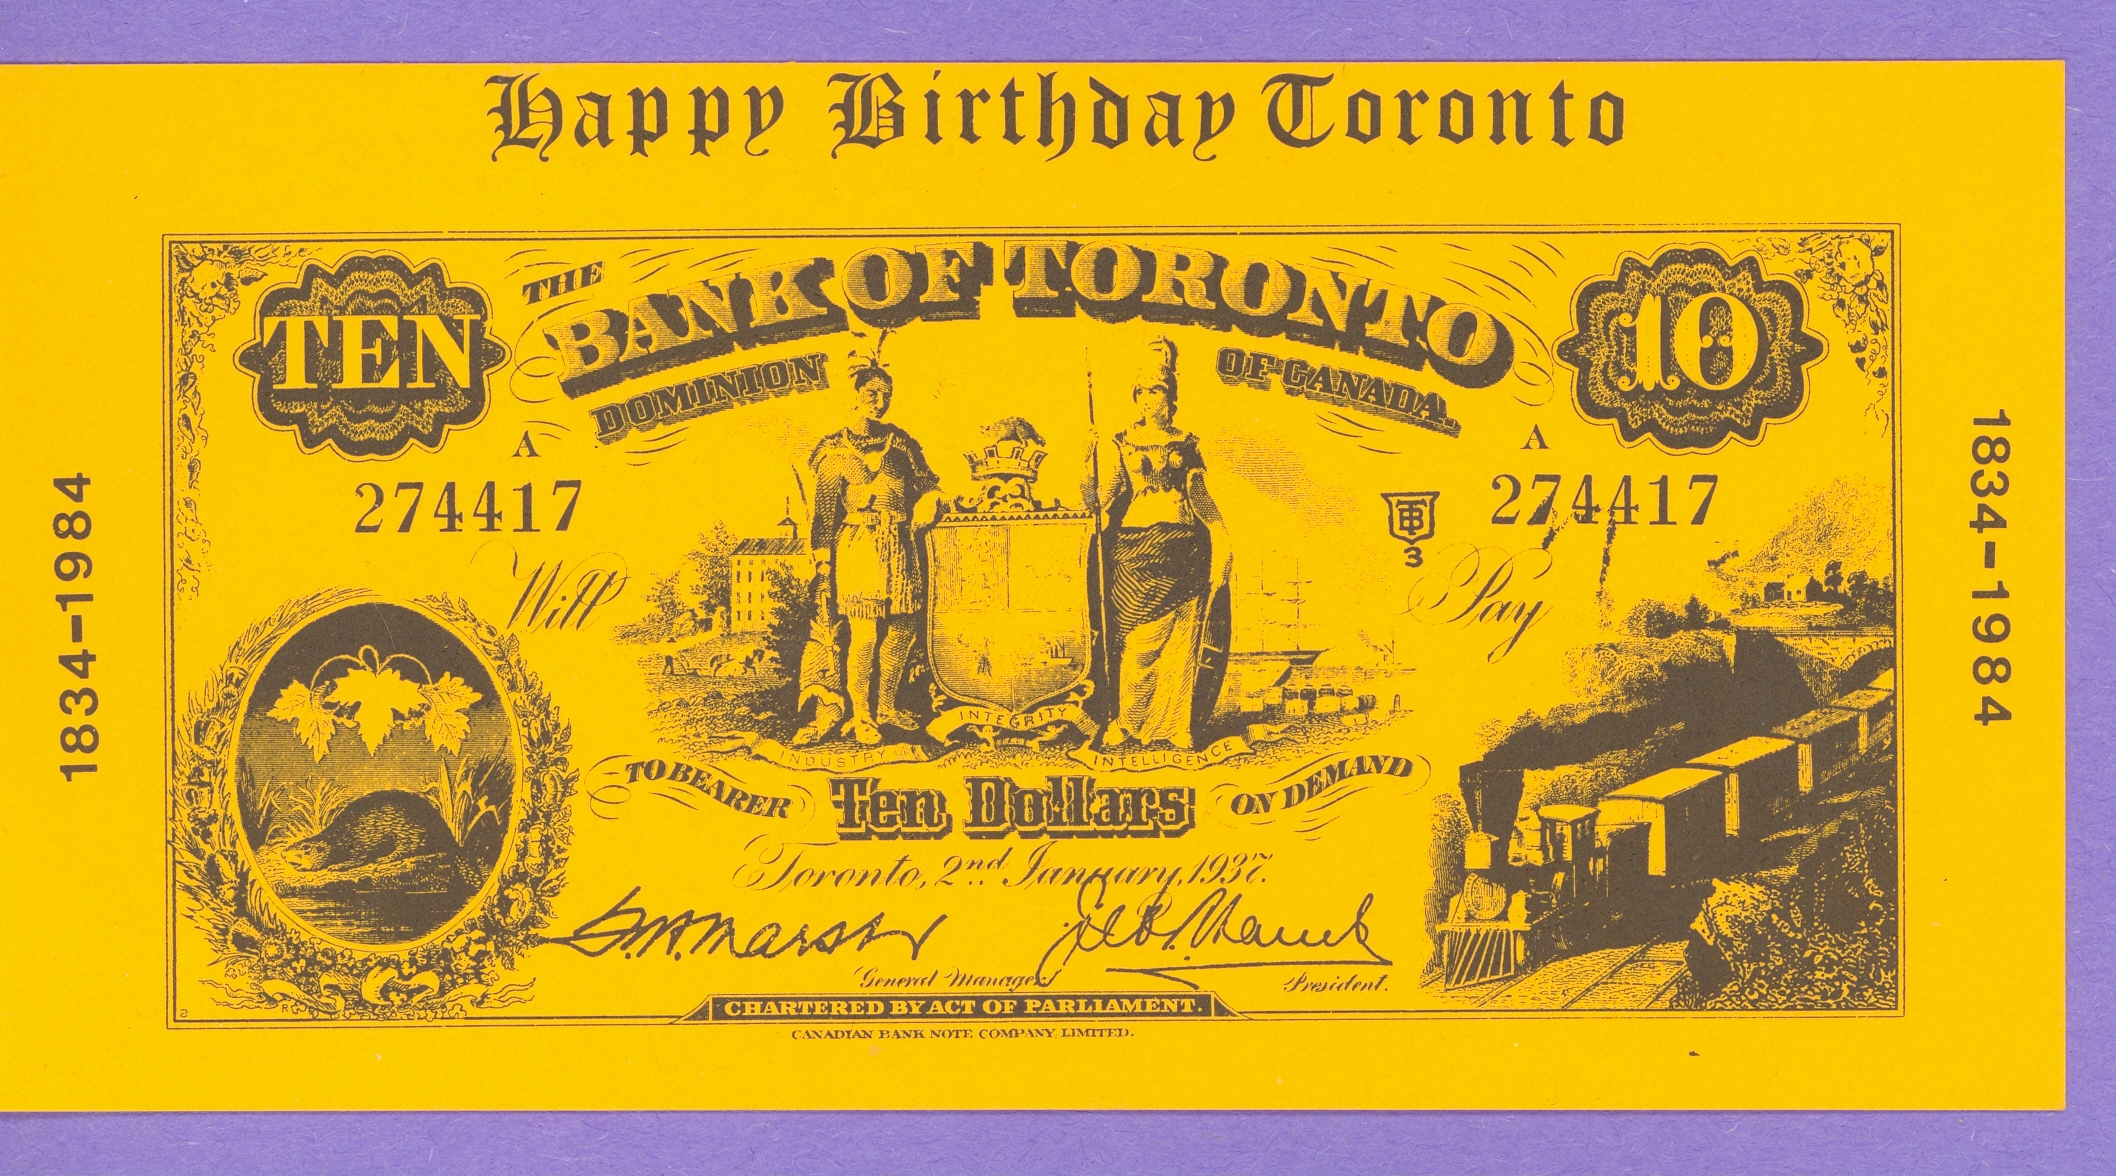 1984 Happy Birthday Toronto, Bank of Toronto, Wally Ciona 1